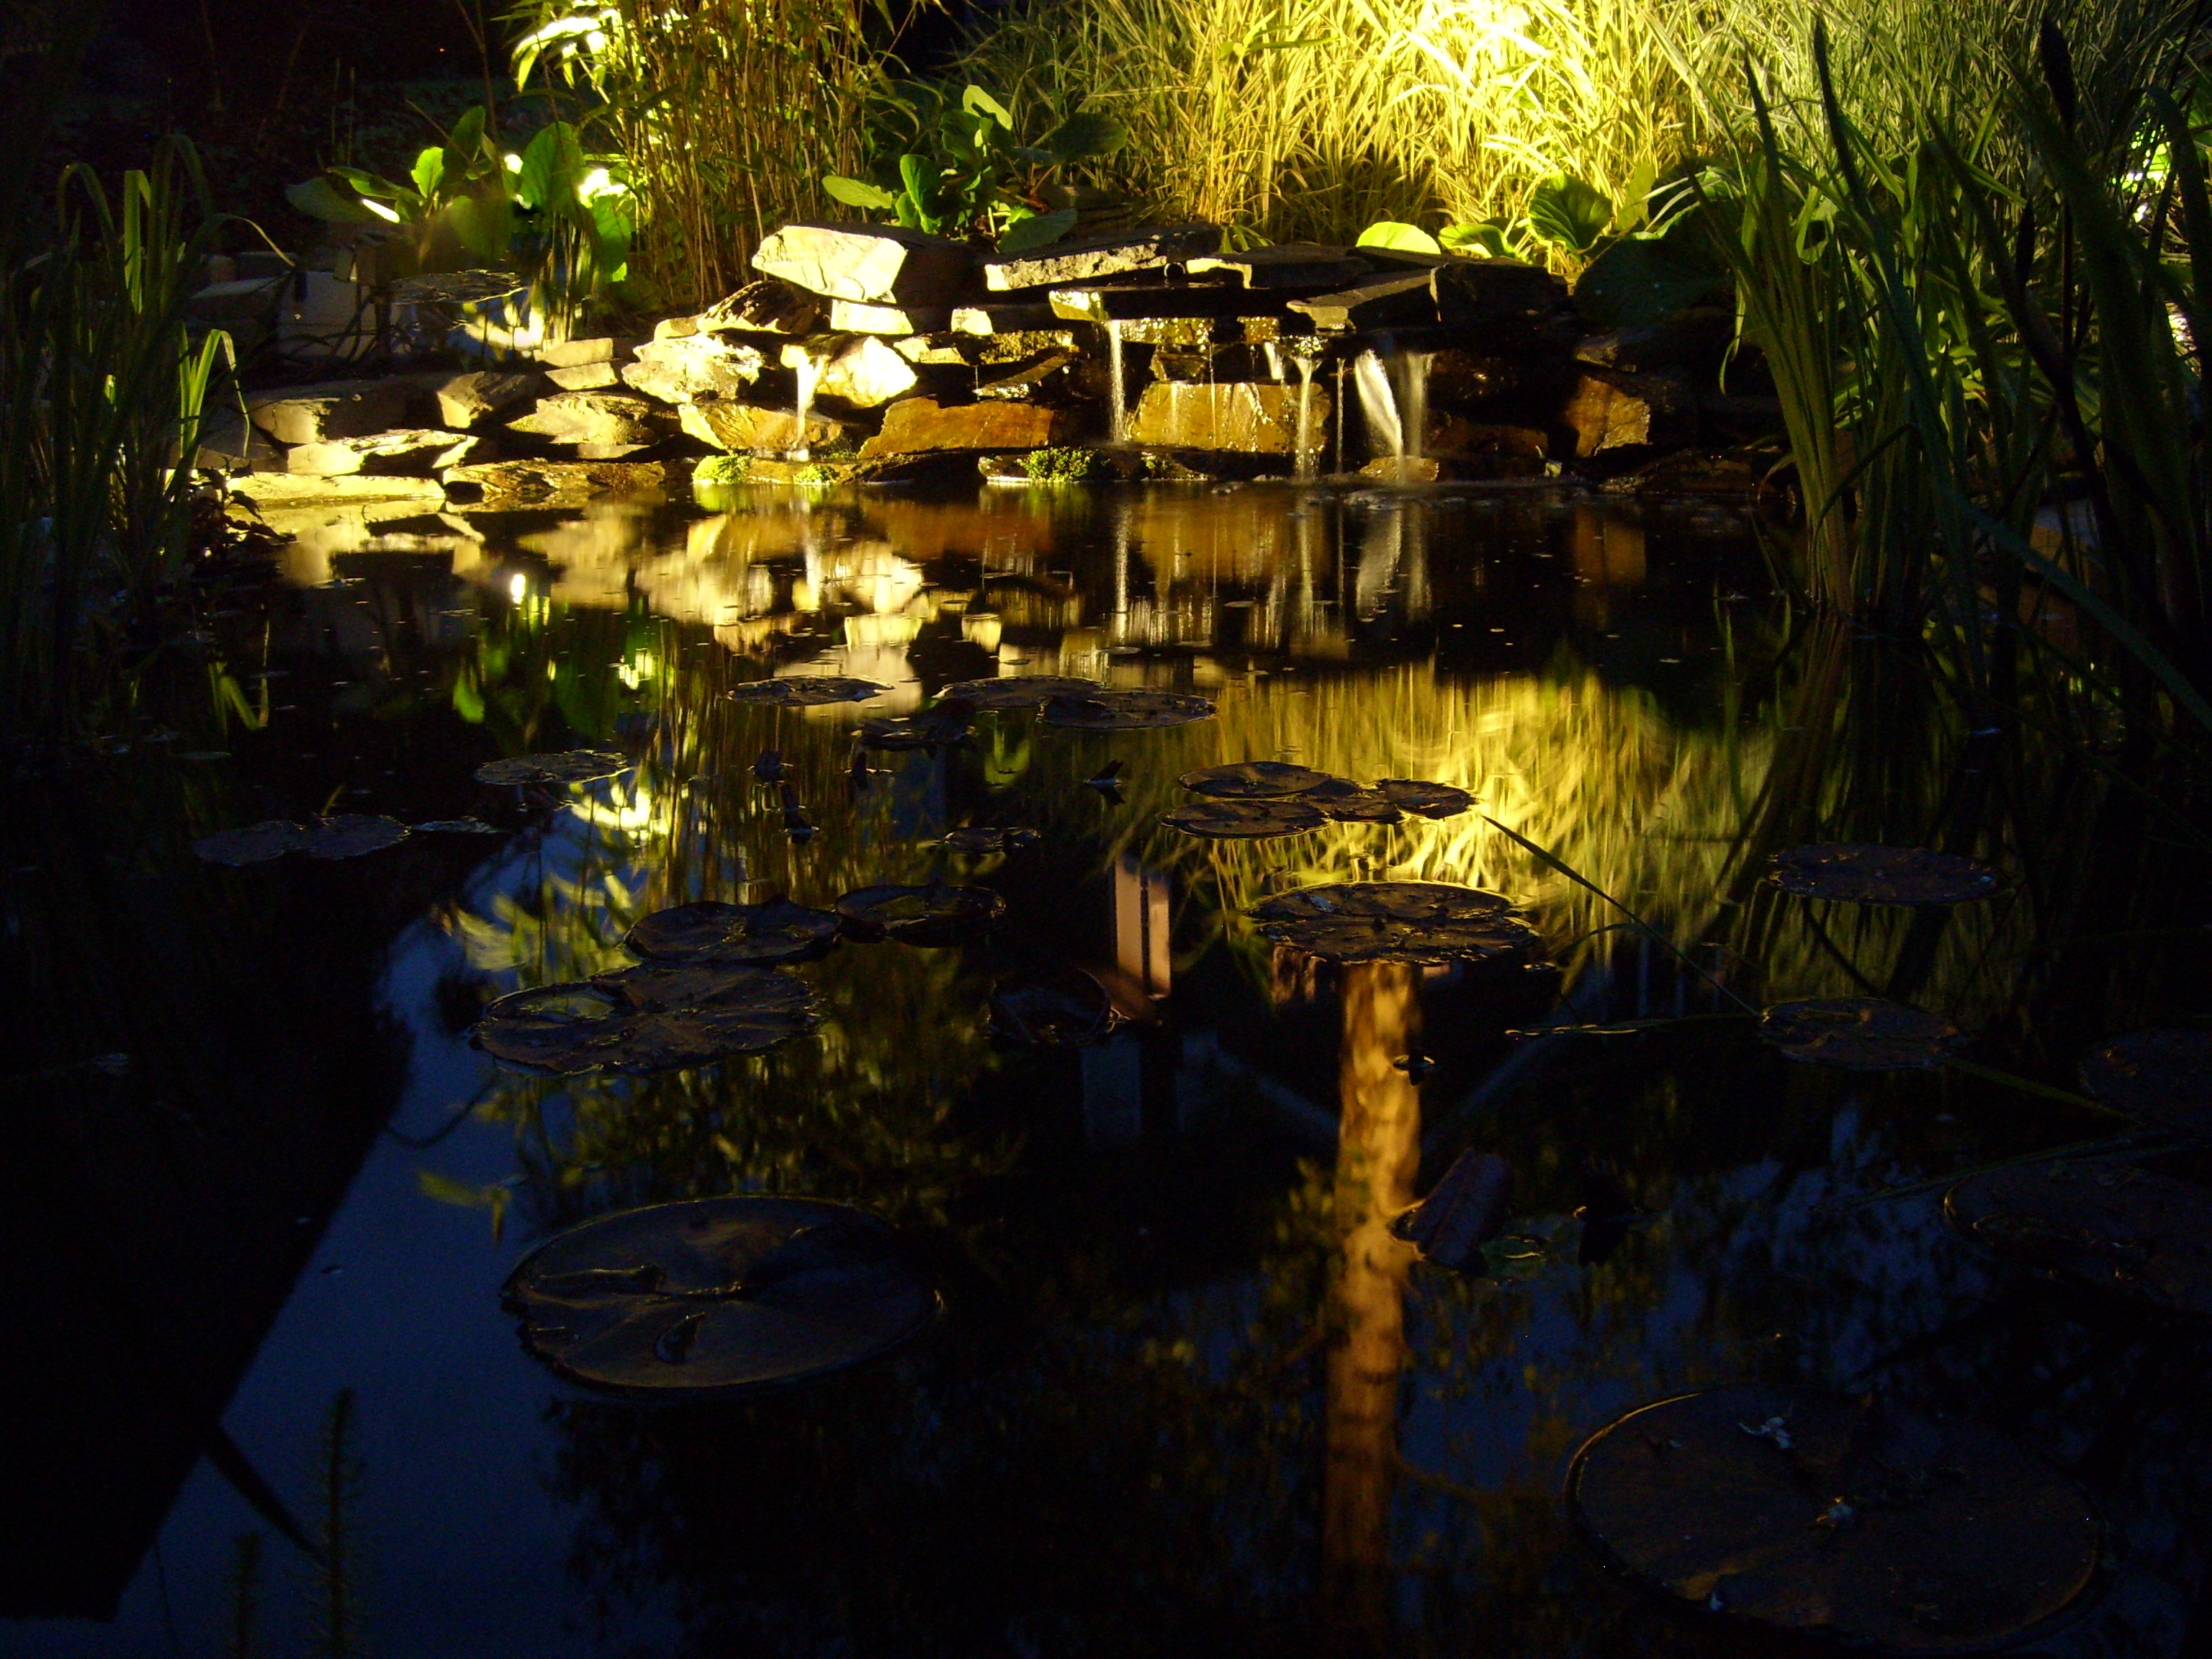 Lighting the pond